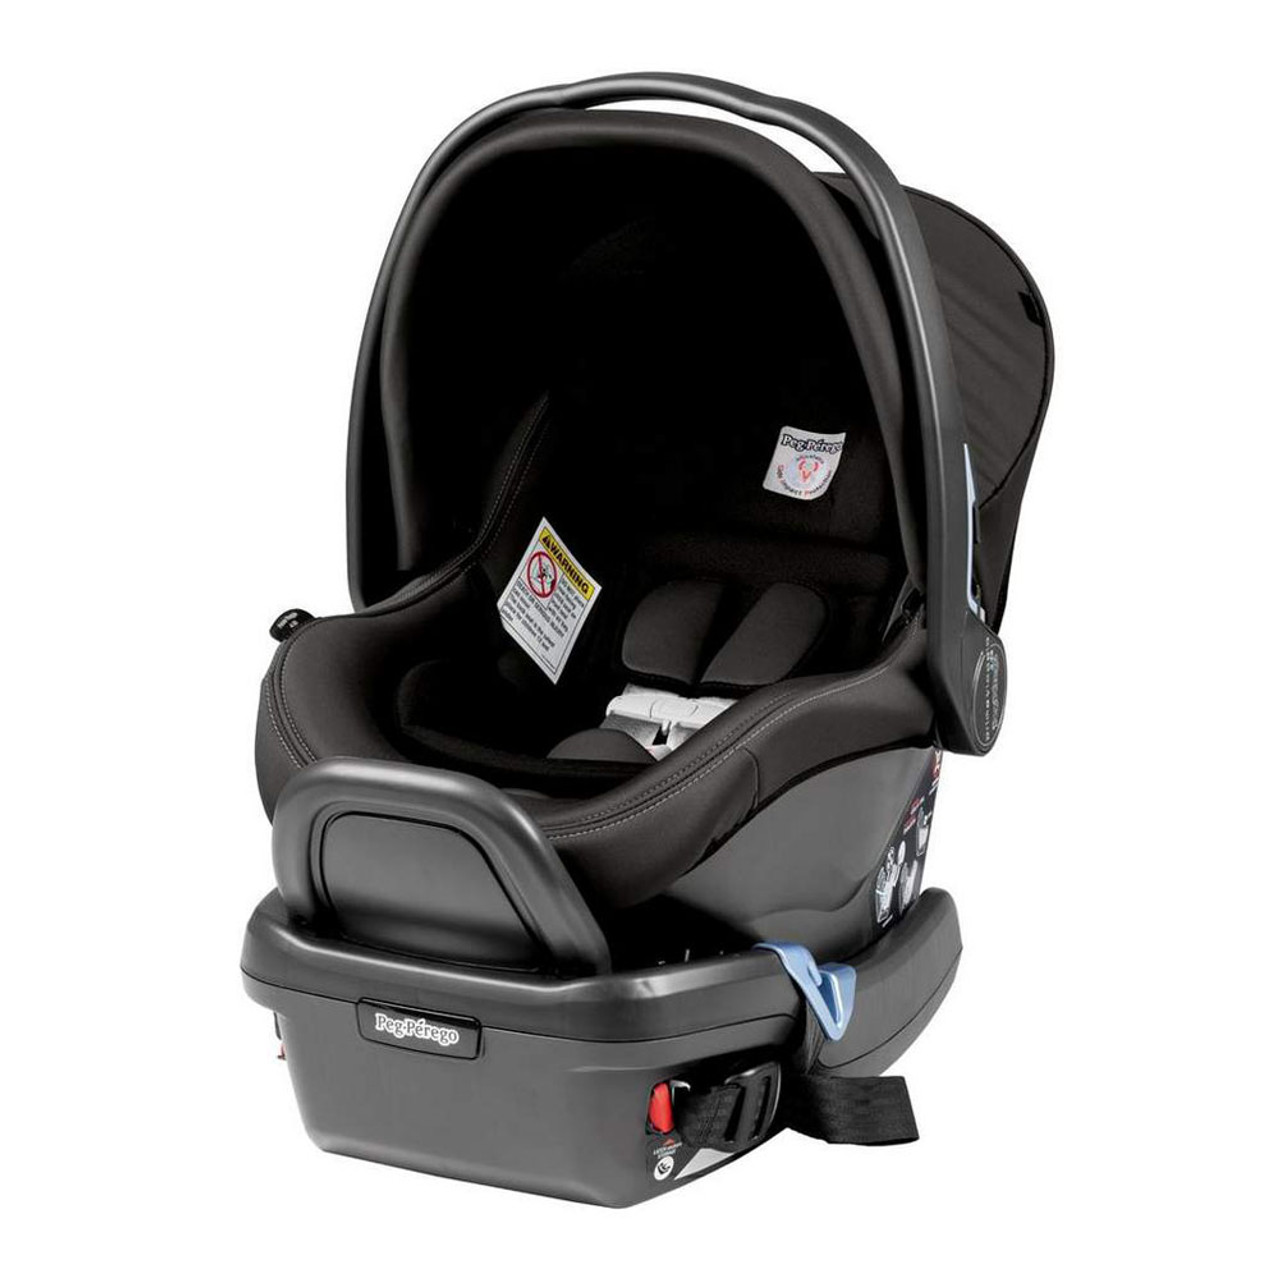 Peg Perego Primo Viaggio SIP 4 35 Infant Car Seat